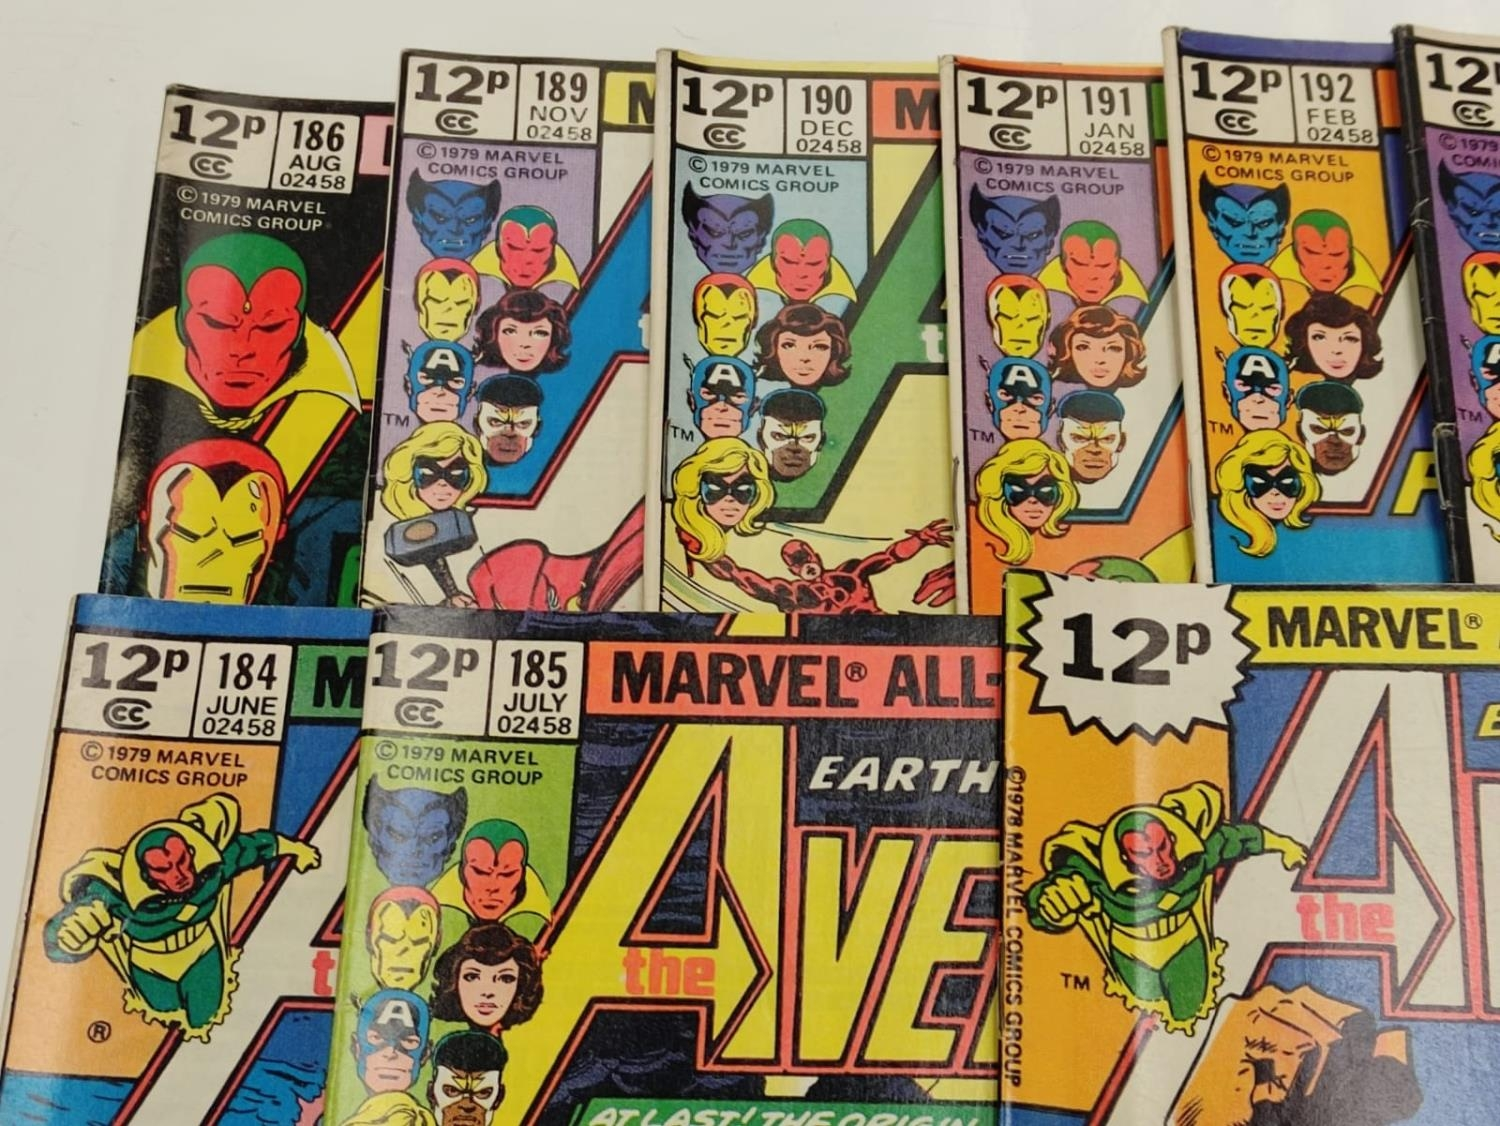 17 editions of Vintage Marvel 'The Avengers' comics in very good condition. - Image 9 of 12